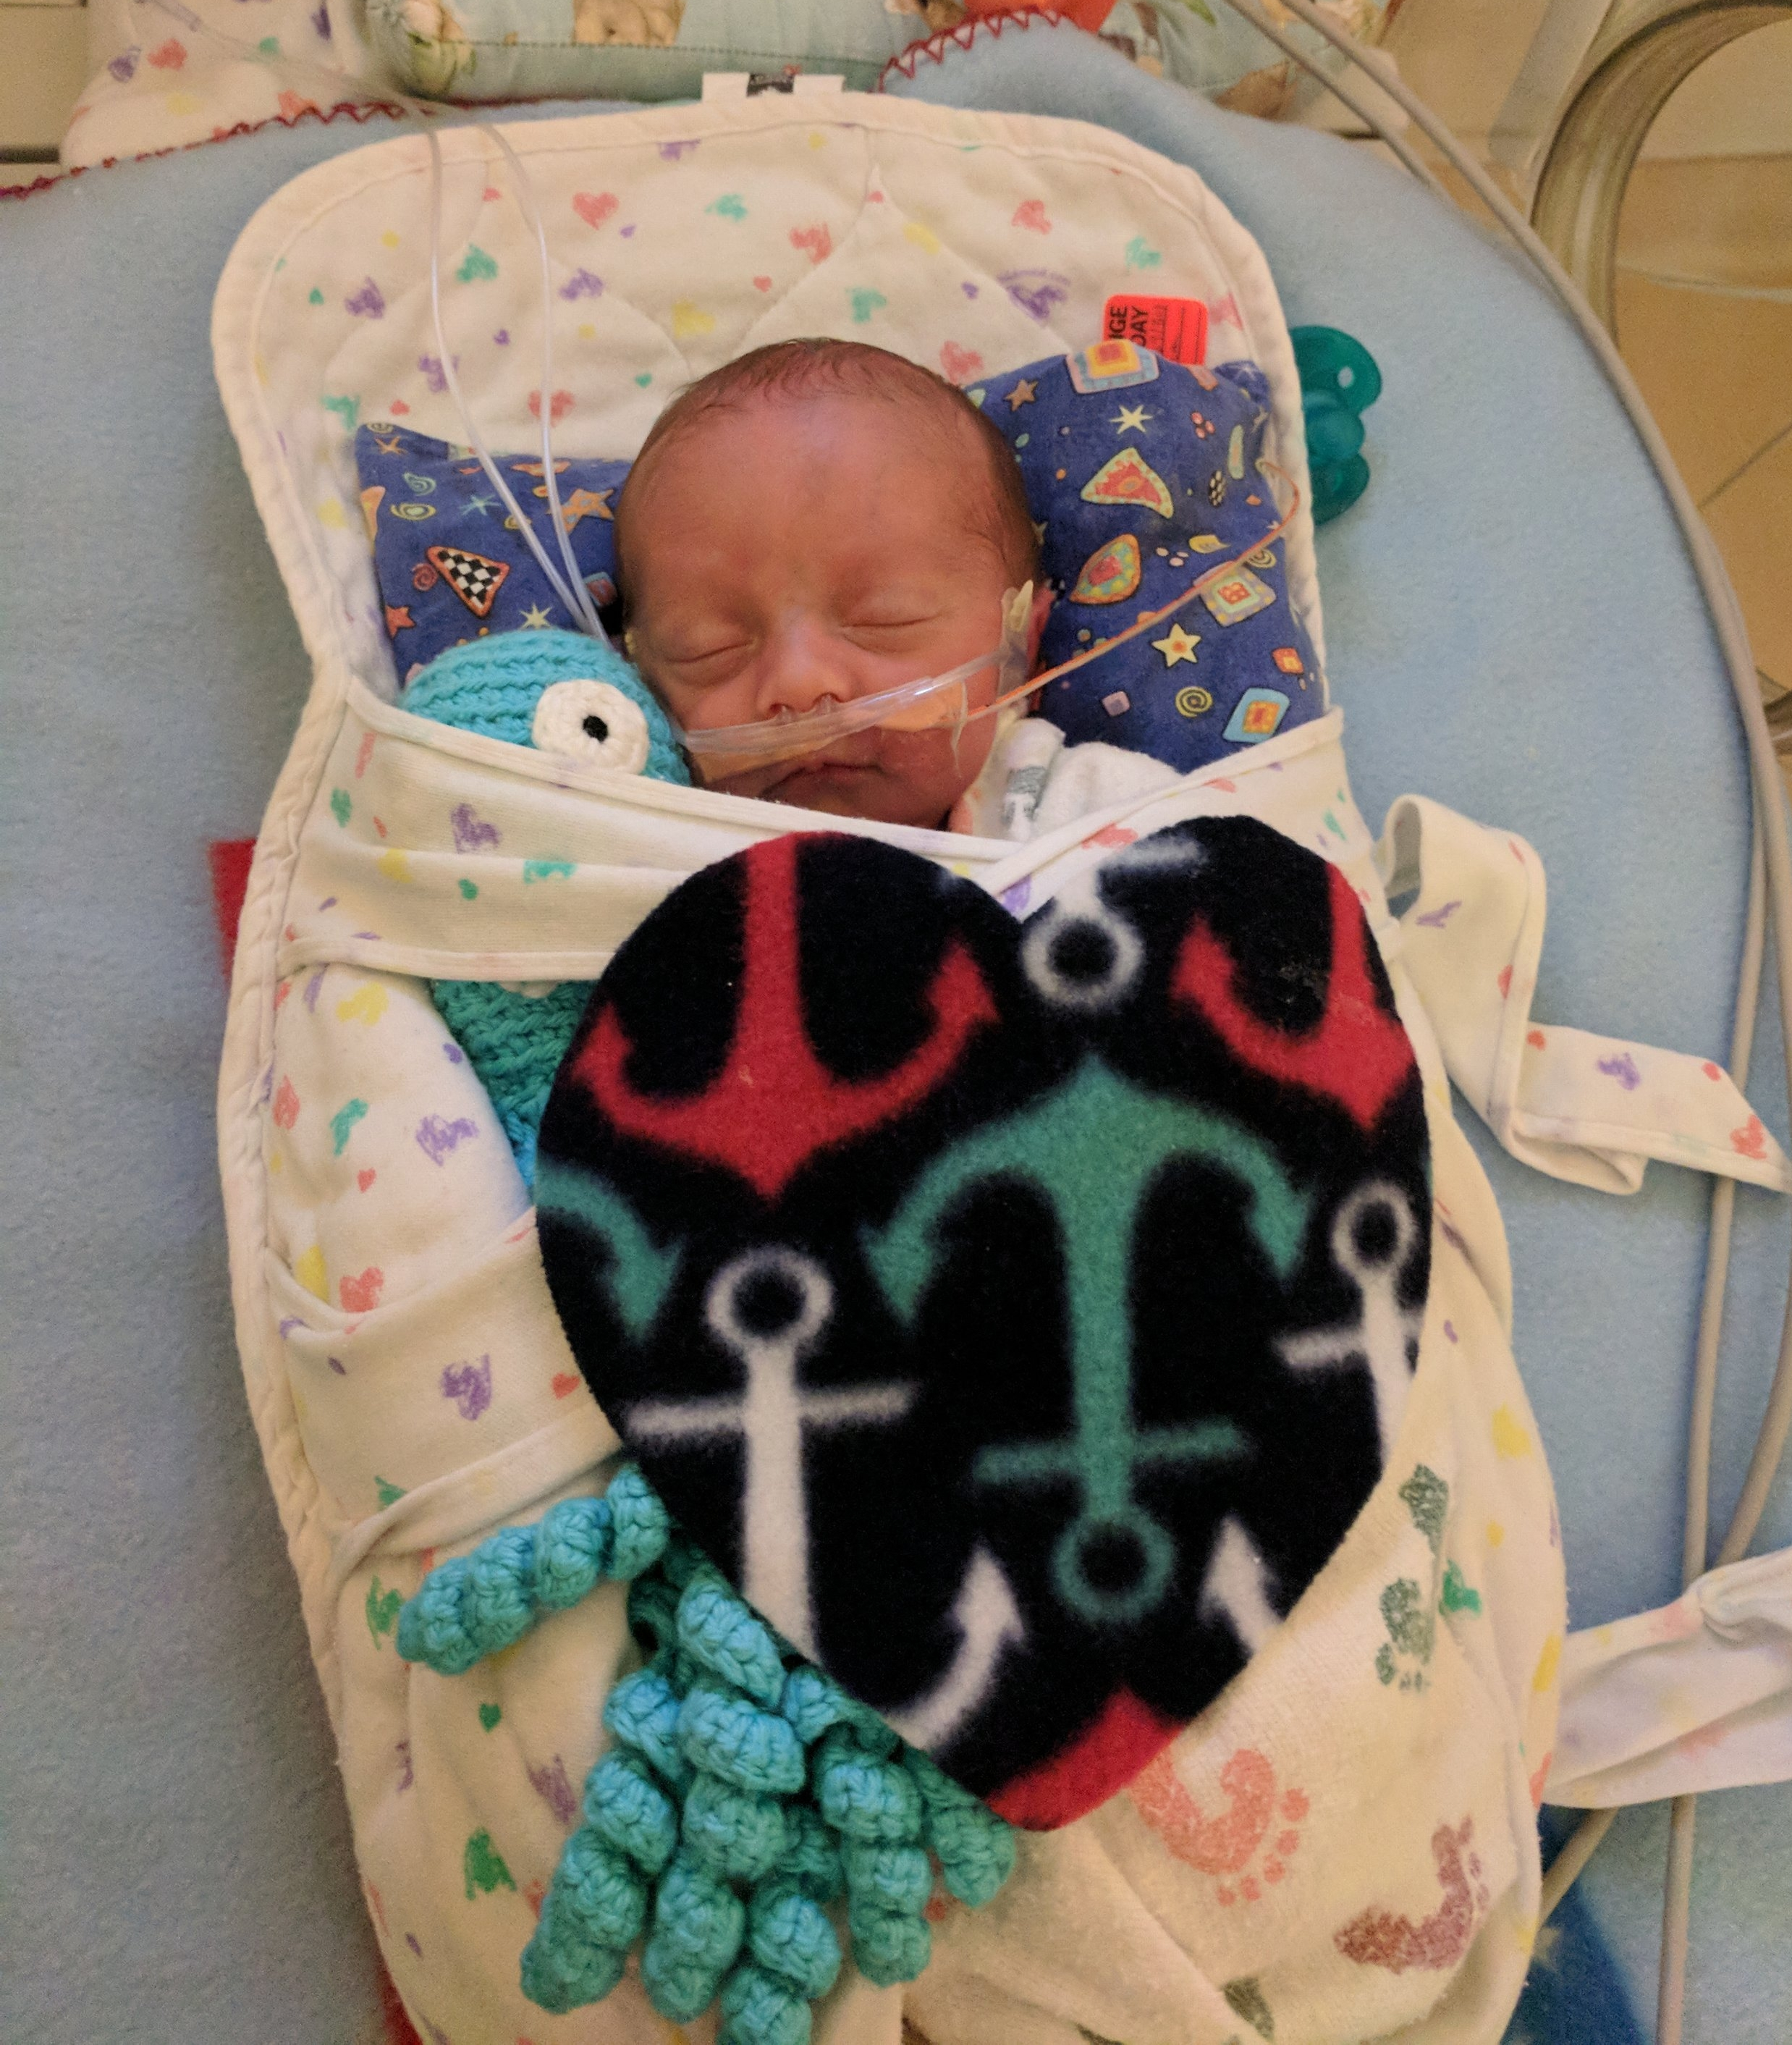 Our Mission - To support families in the Neonatal Intensive Care Unit {NICU} to thrive during their stay and at home. Love for Lily does this through facilitated support groups; teaching coping skills and providing community.Essentials Bags; items that can provide a little comfort and ease the burden of life in the NICU. Grants for insured families who spend 4 weeks or more in the NICU to help obtain therapies that support the well being of their child(ren). Lasting Love, Post-NICU Group for moms to come together for one year after discharge.Learn More